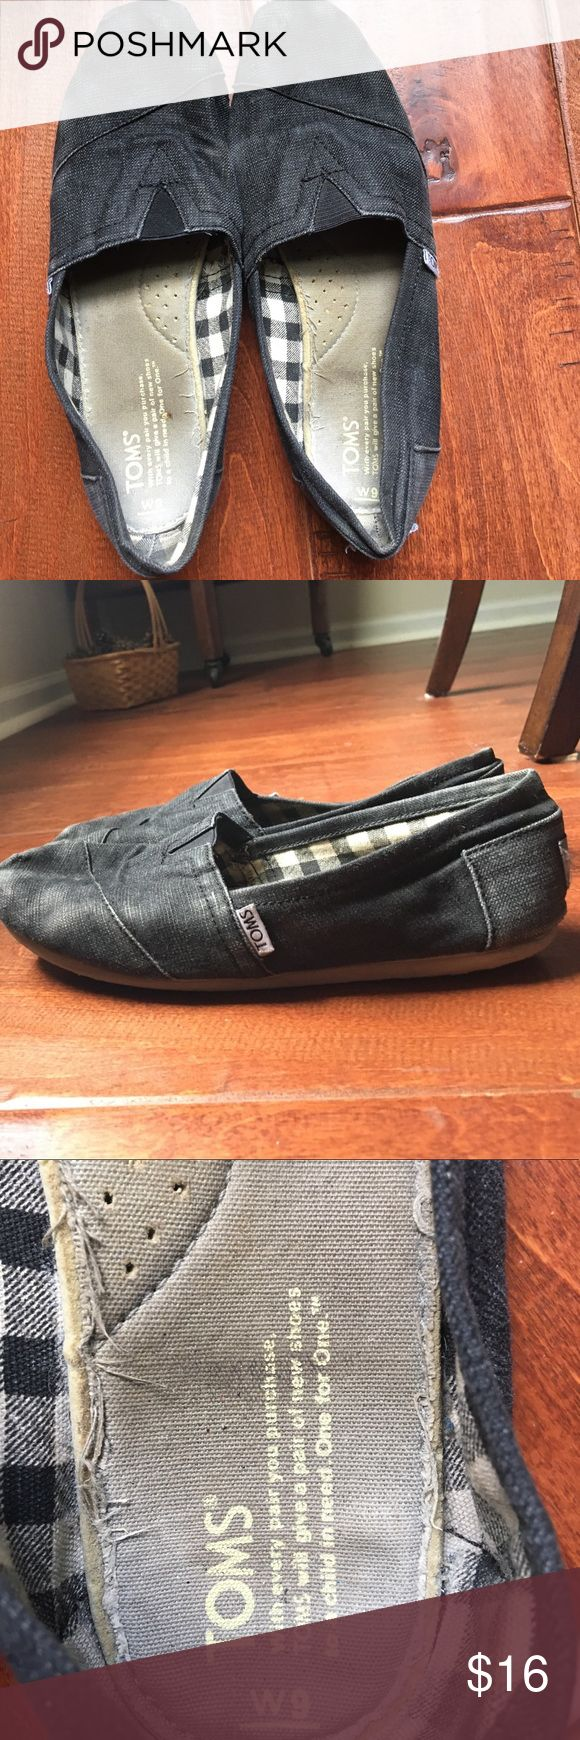 Women's Gray Toms Women's Gray Toms, worn but still have life left in them! Super comfortable TOMS Shoes Flats & Loafers